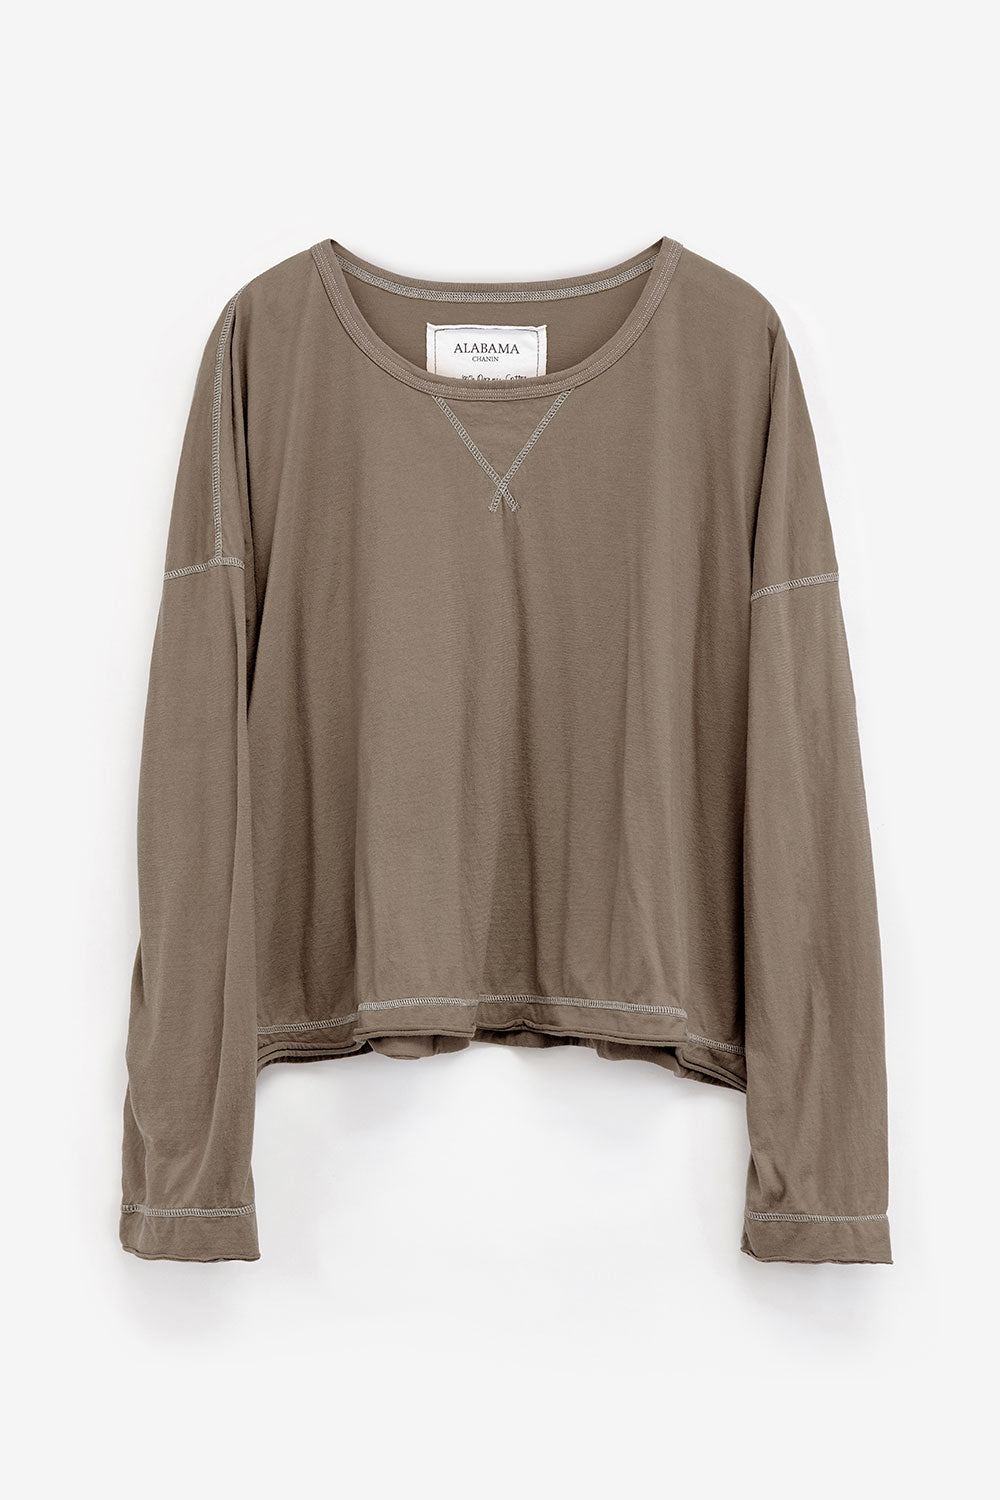 Alabama Chanin Organic Cotton Womens Coverup Top Oversized with Long Sleeves